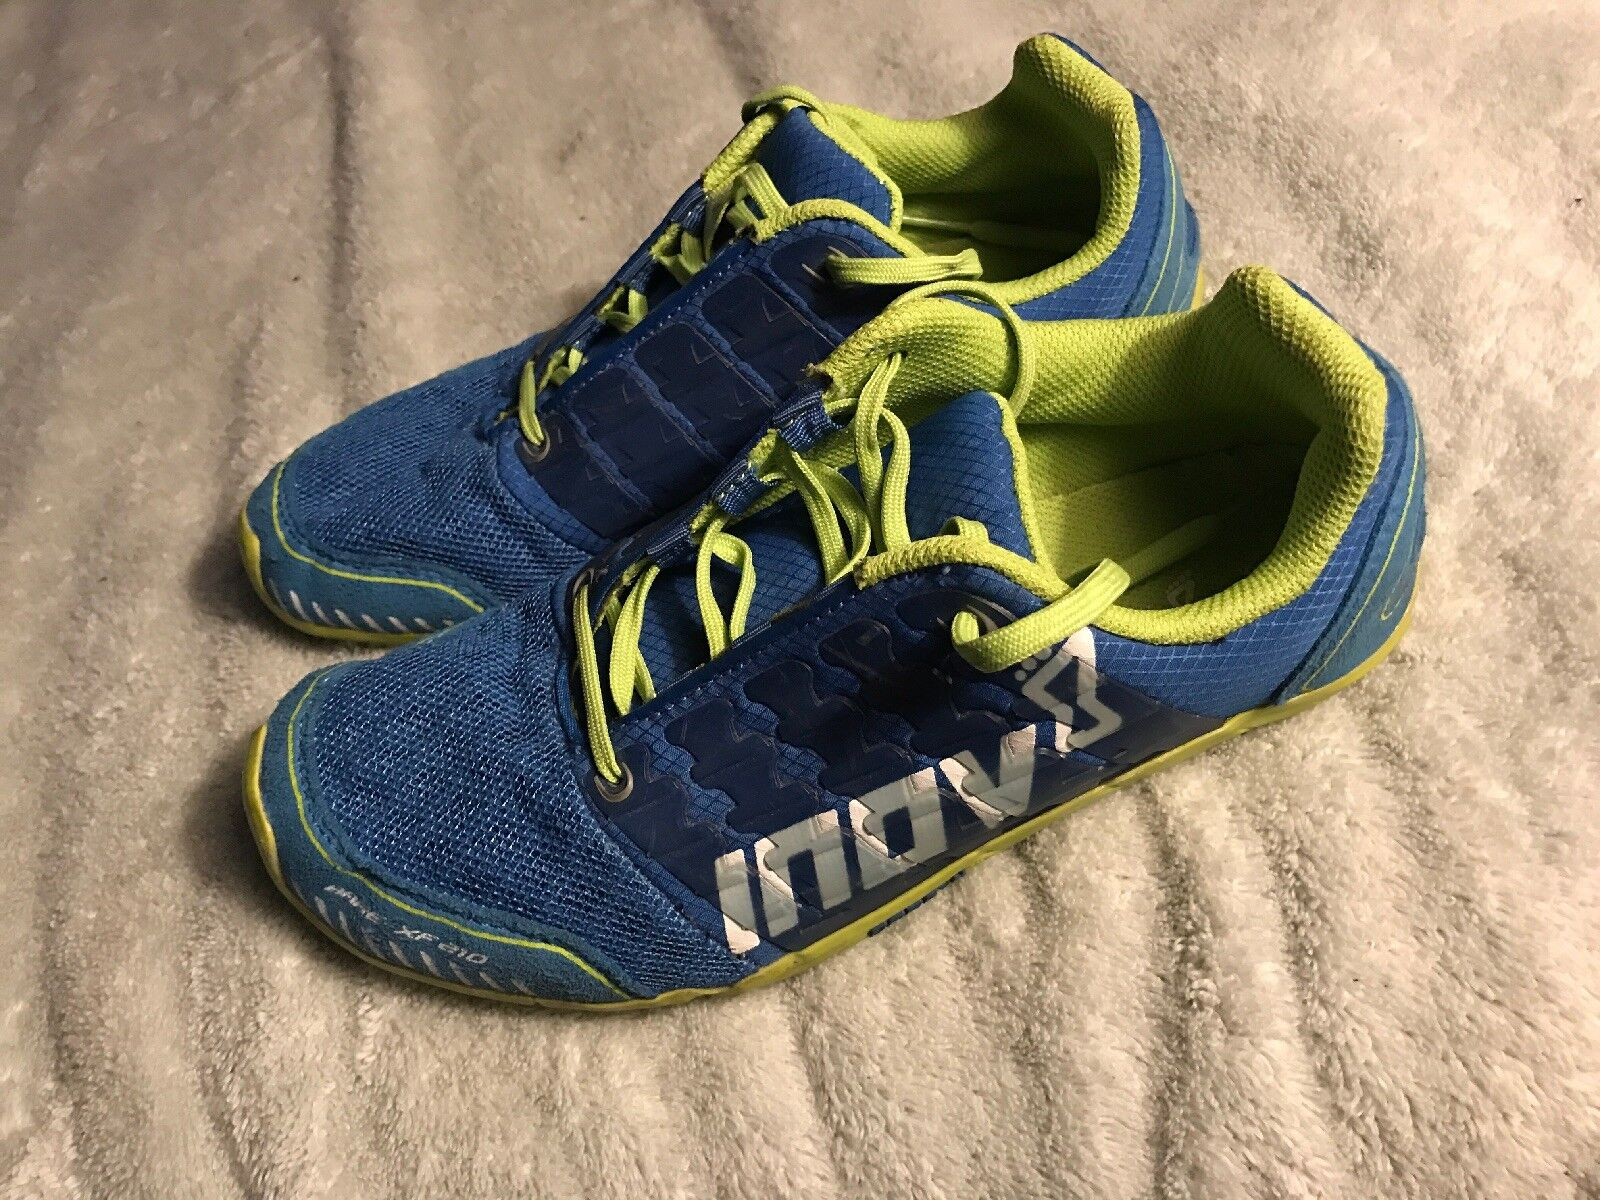 sports shoes 605b3 18874 Inov Unisex Shoes Bare-XF 210 Standard Standard Standard Fit Blue Green Size  6 Mens